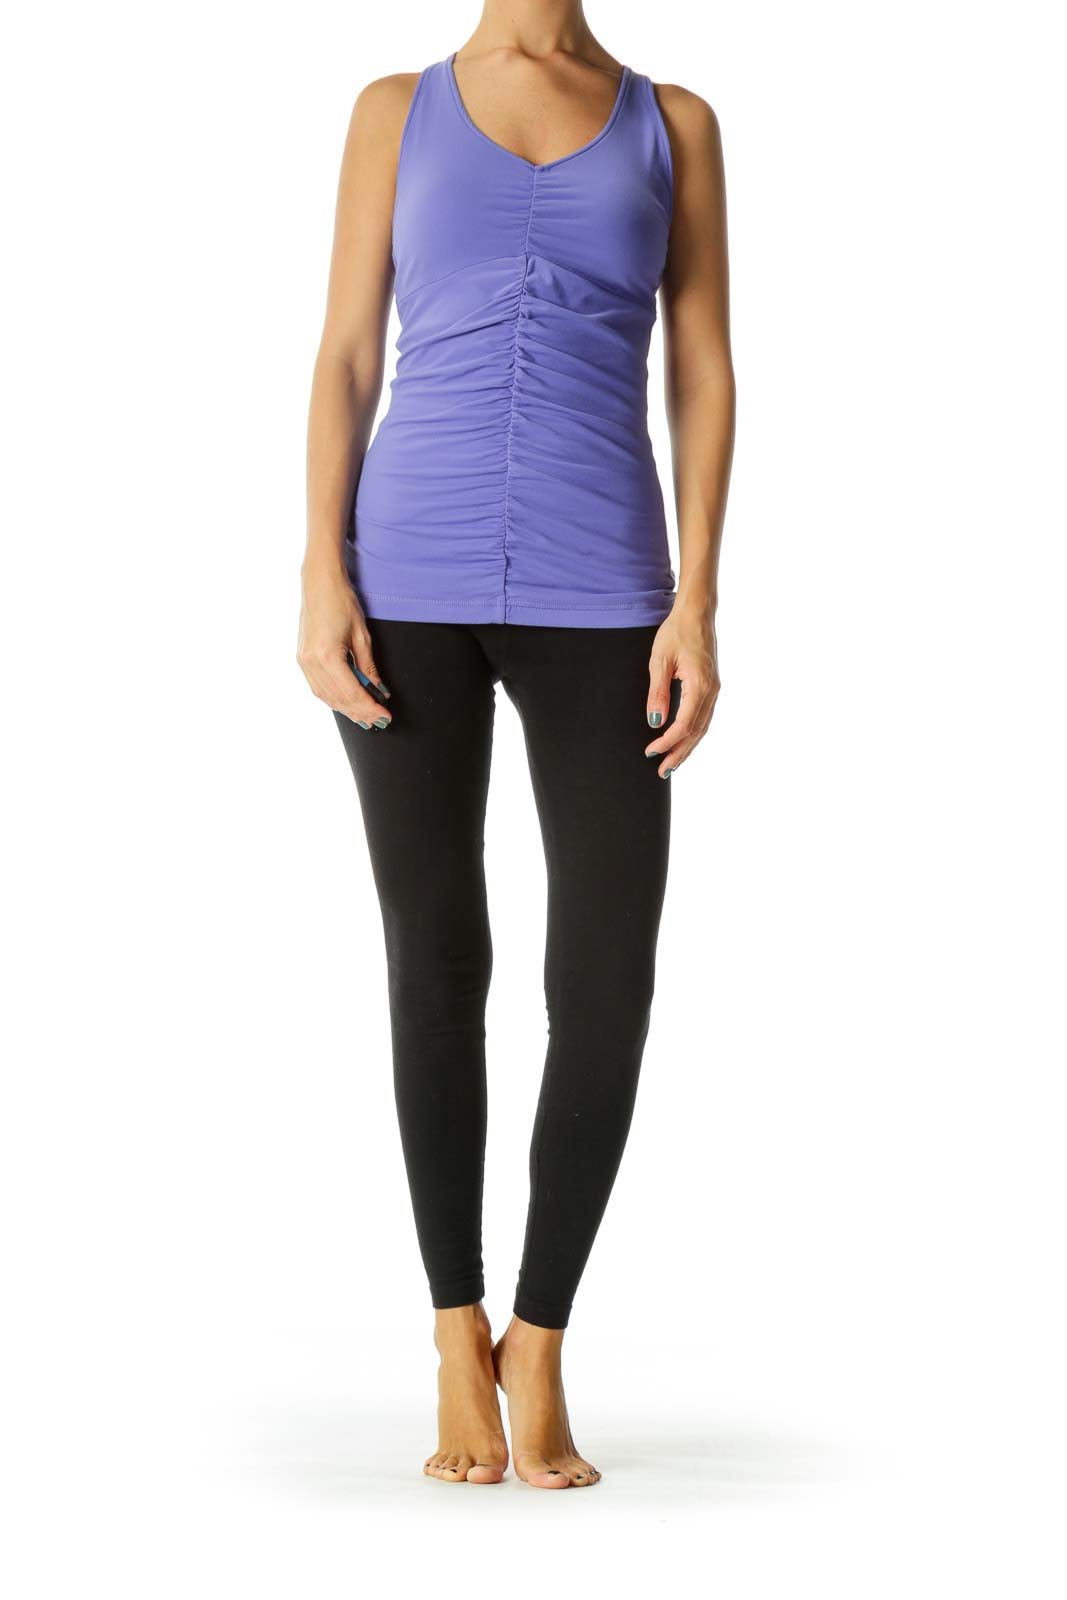 Purple V-Neck Scrunched Detail Sports Tank Top with Built-In Support Bra